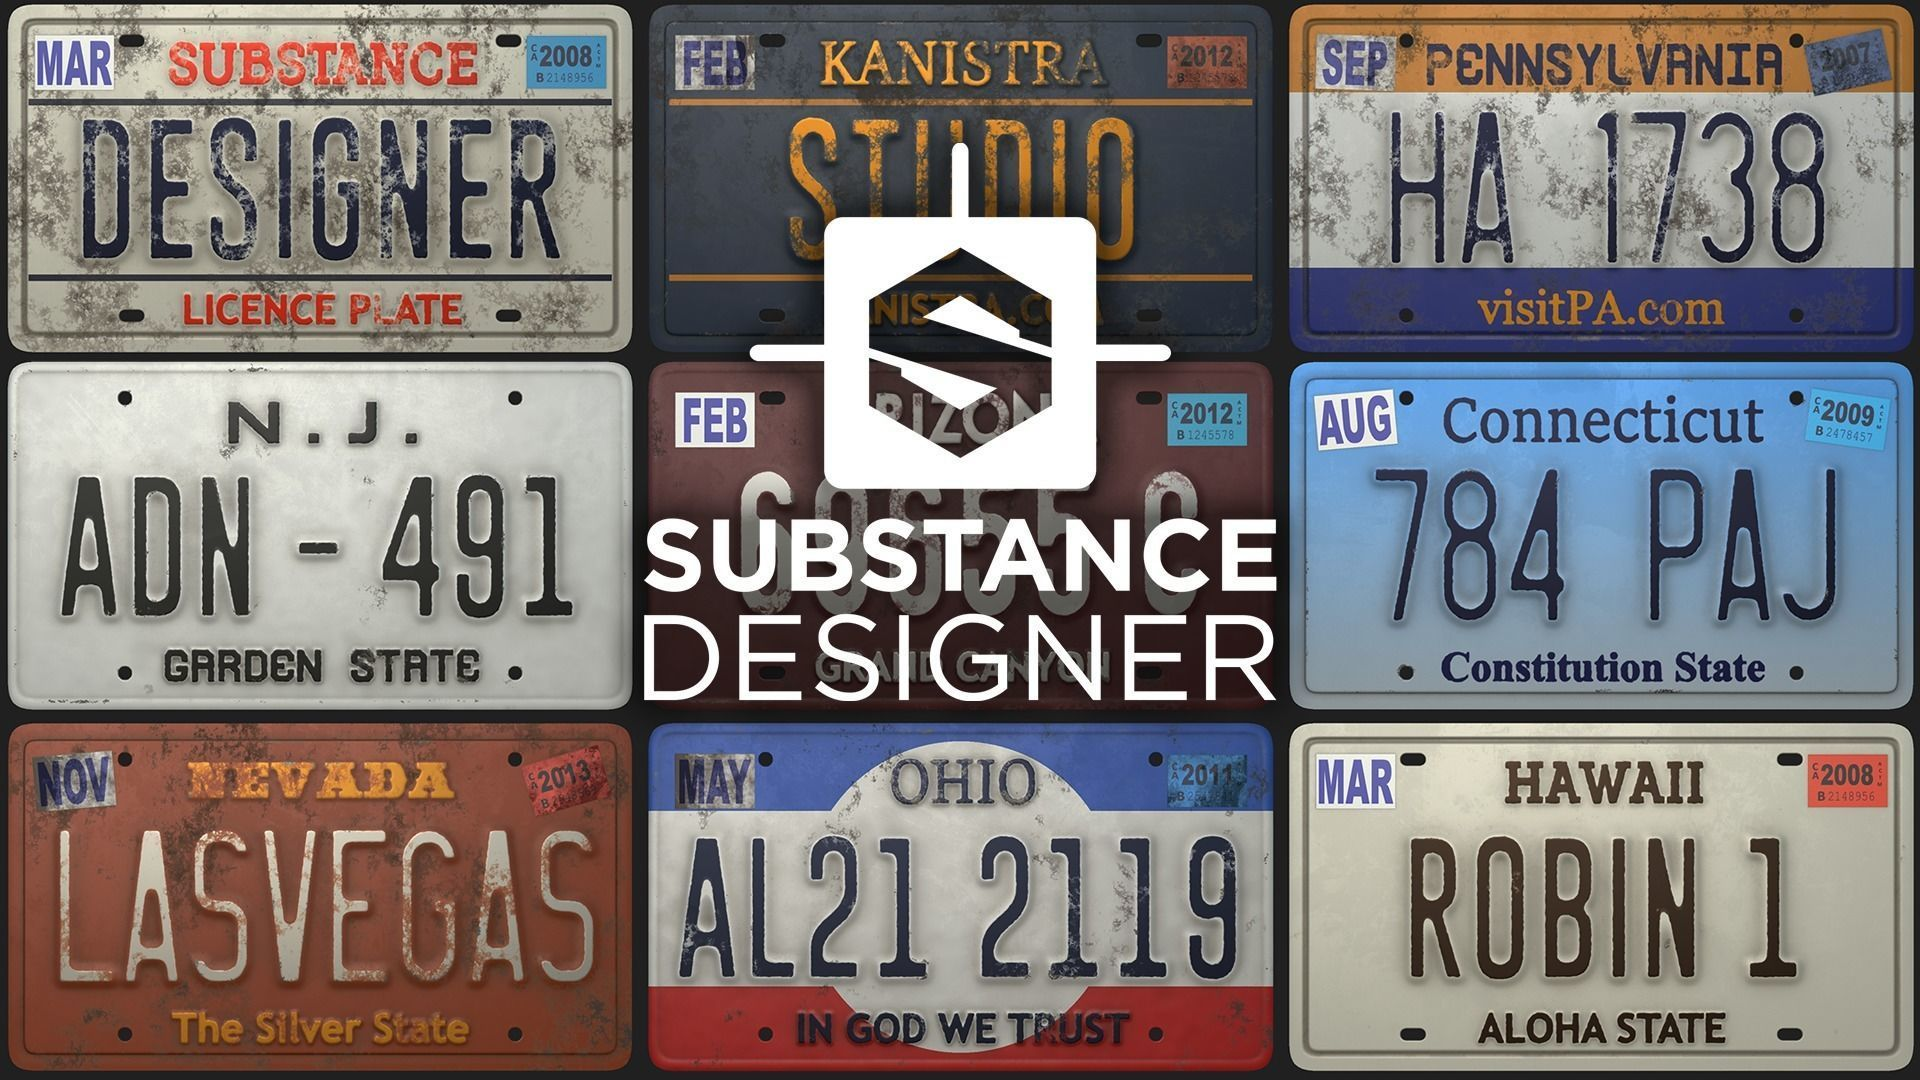 Licence Plate Substance Material